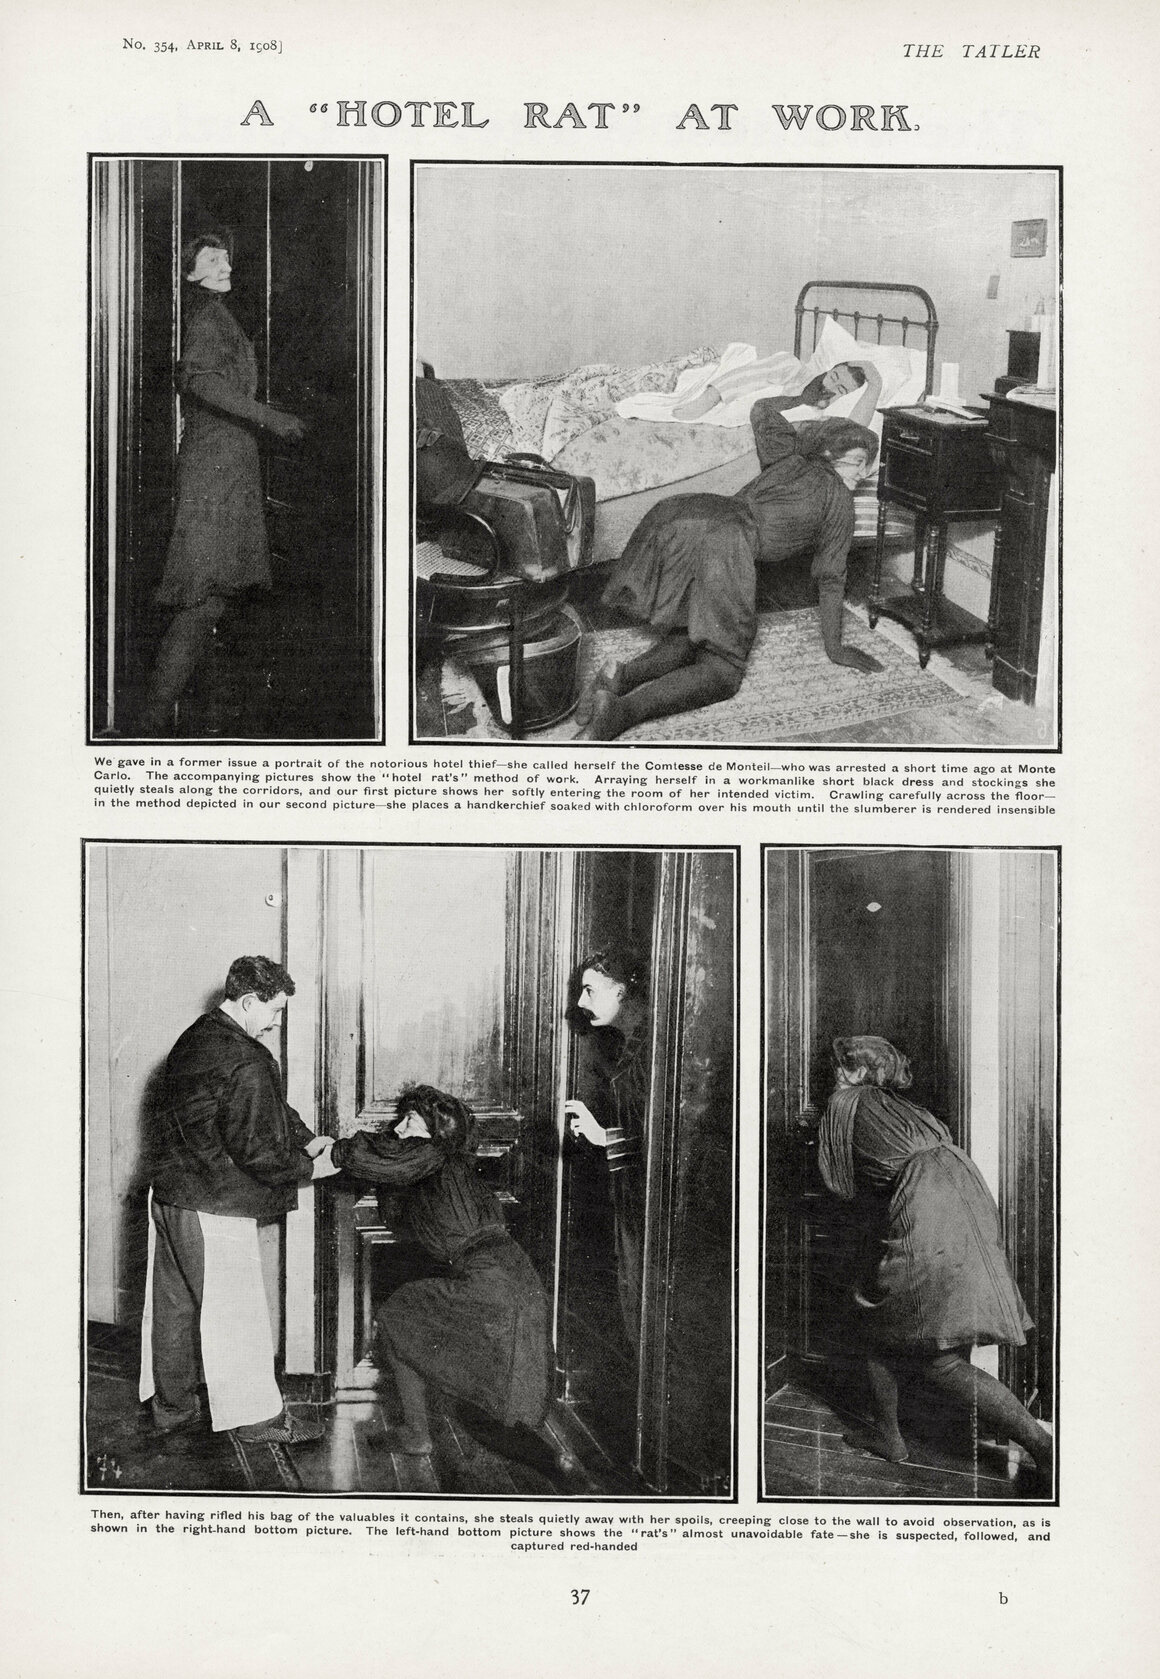 In April 1908, <em>The Tatler</em> published a detailed reenactment of the pseudocomtesse's M.O. and arrest—erroneously described here as taking place in Monte Carlo.